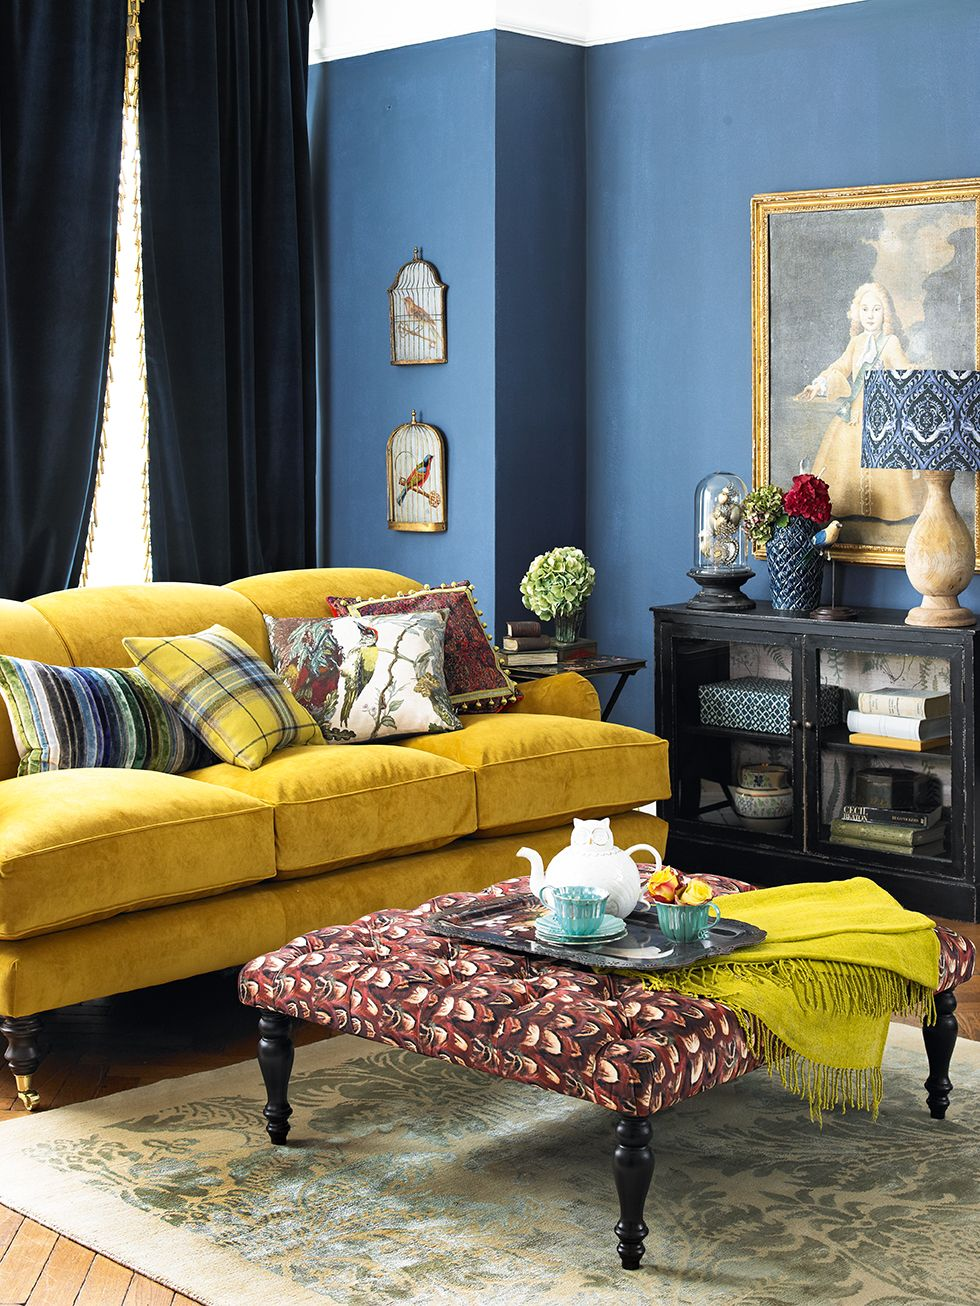 Eclectic British Decorating Ideas Yellow Living Room Living Room Color Schemes Blue Living Room